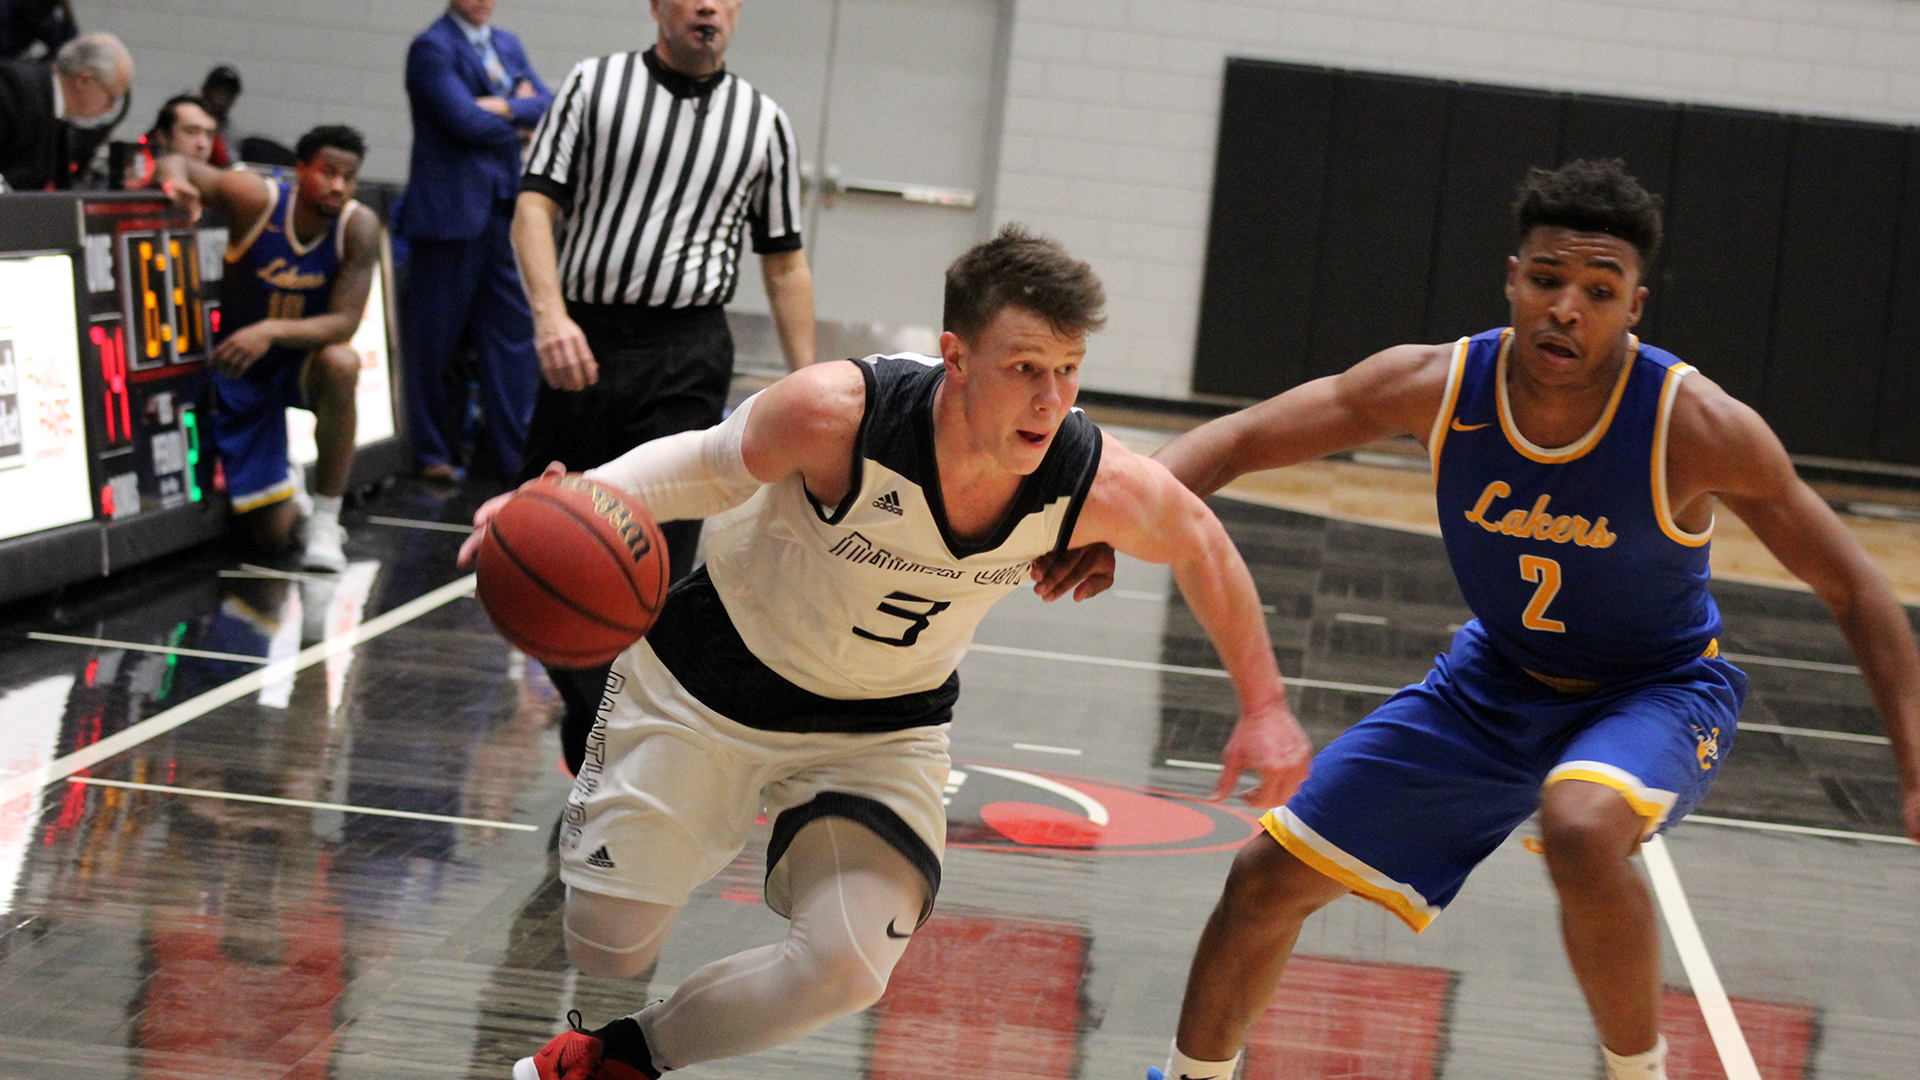 Davenport wins up-tempo game against Great Lakes Christian 105-77